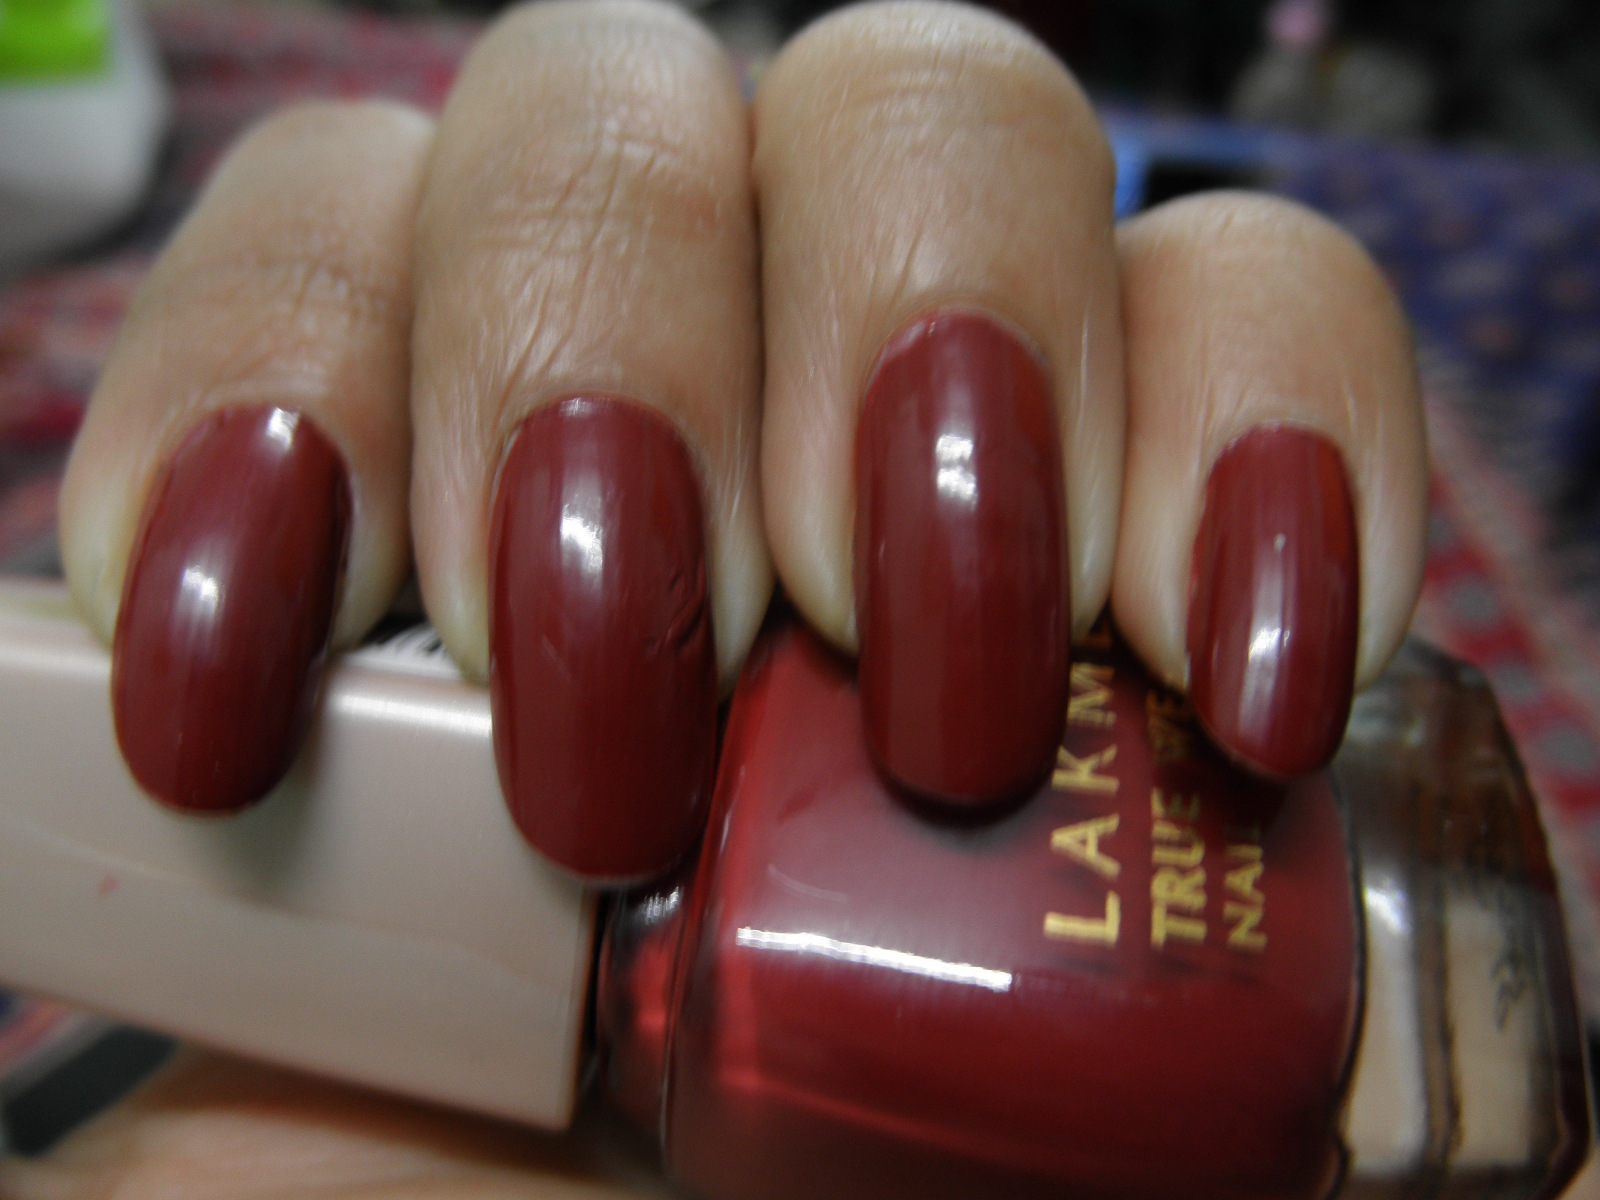 Lakme True Wear nail color #D416 Review + NOTD – CORALLISTA